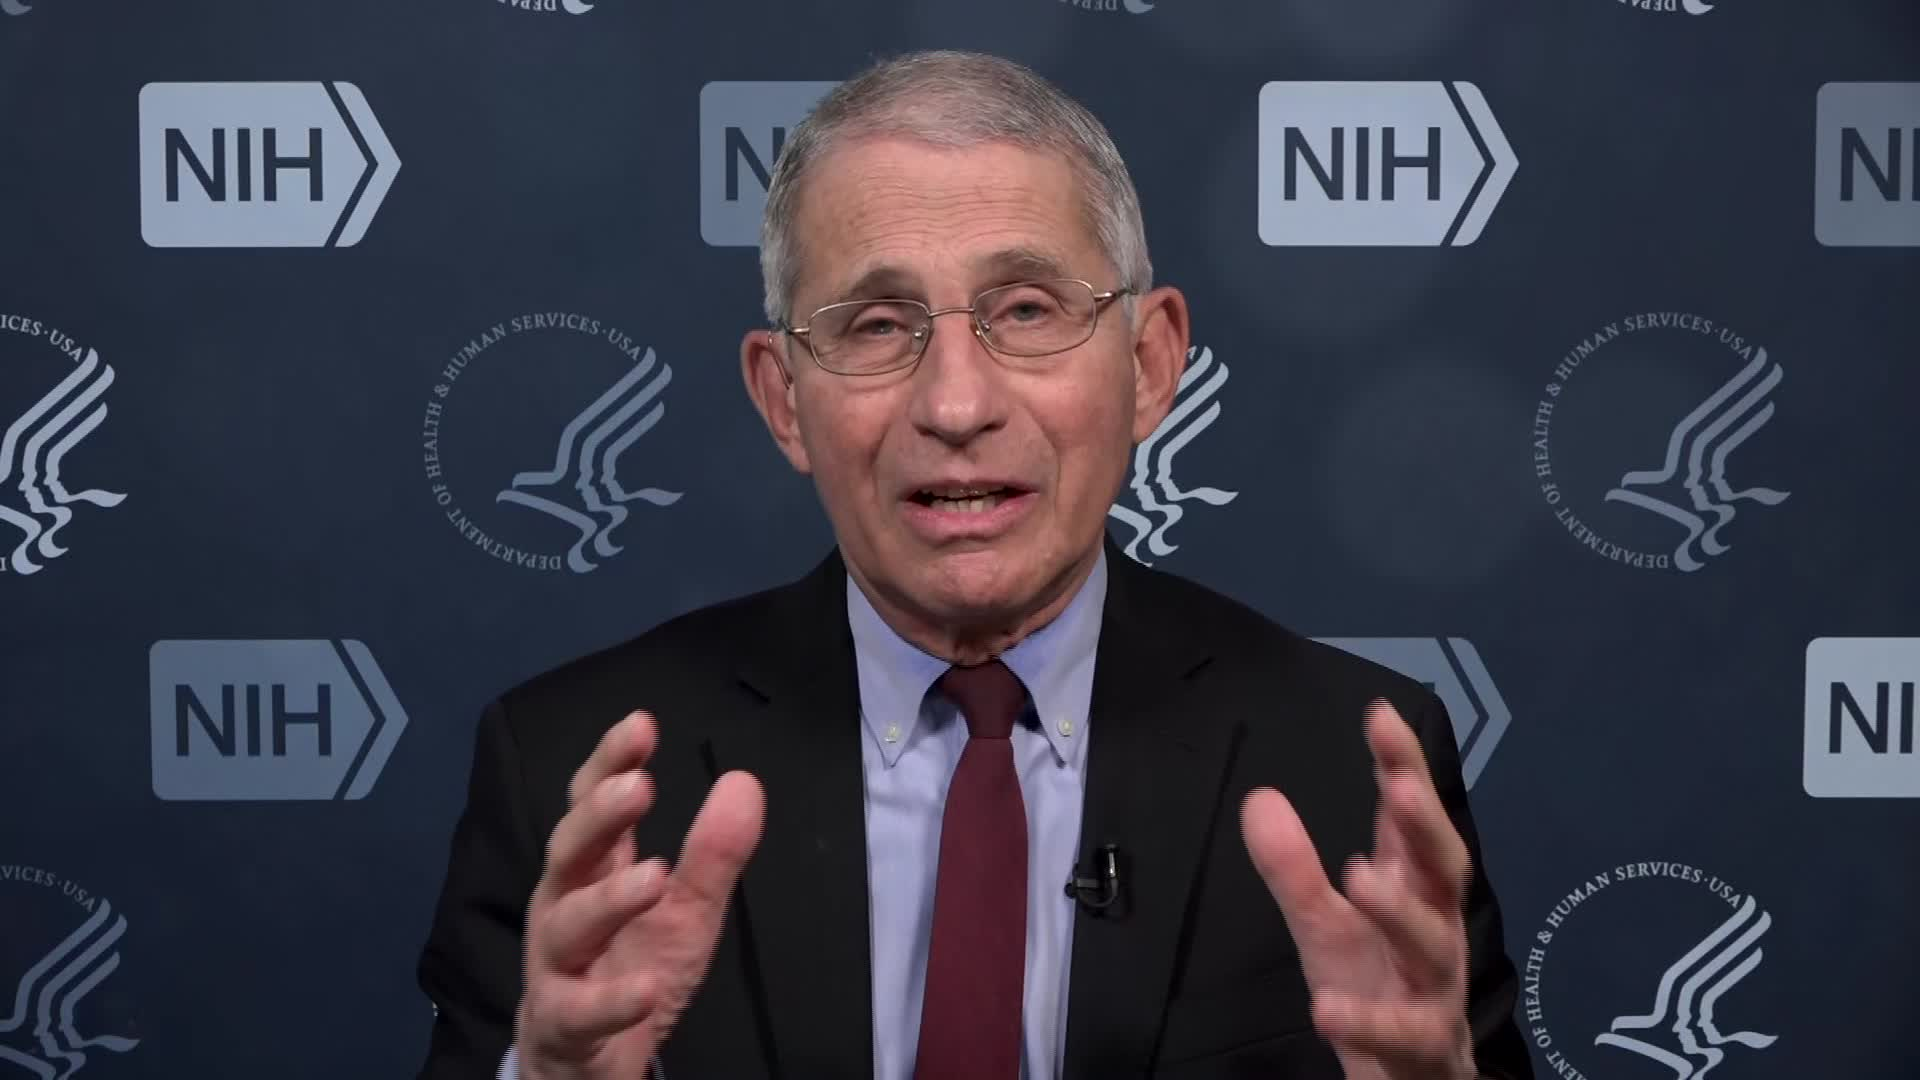 Dr. Anthony Fauci, the nation's leading infectious disease expert, speaks during an interview on December 29.